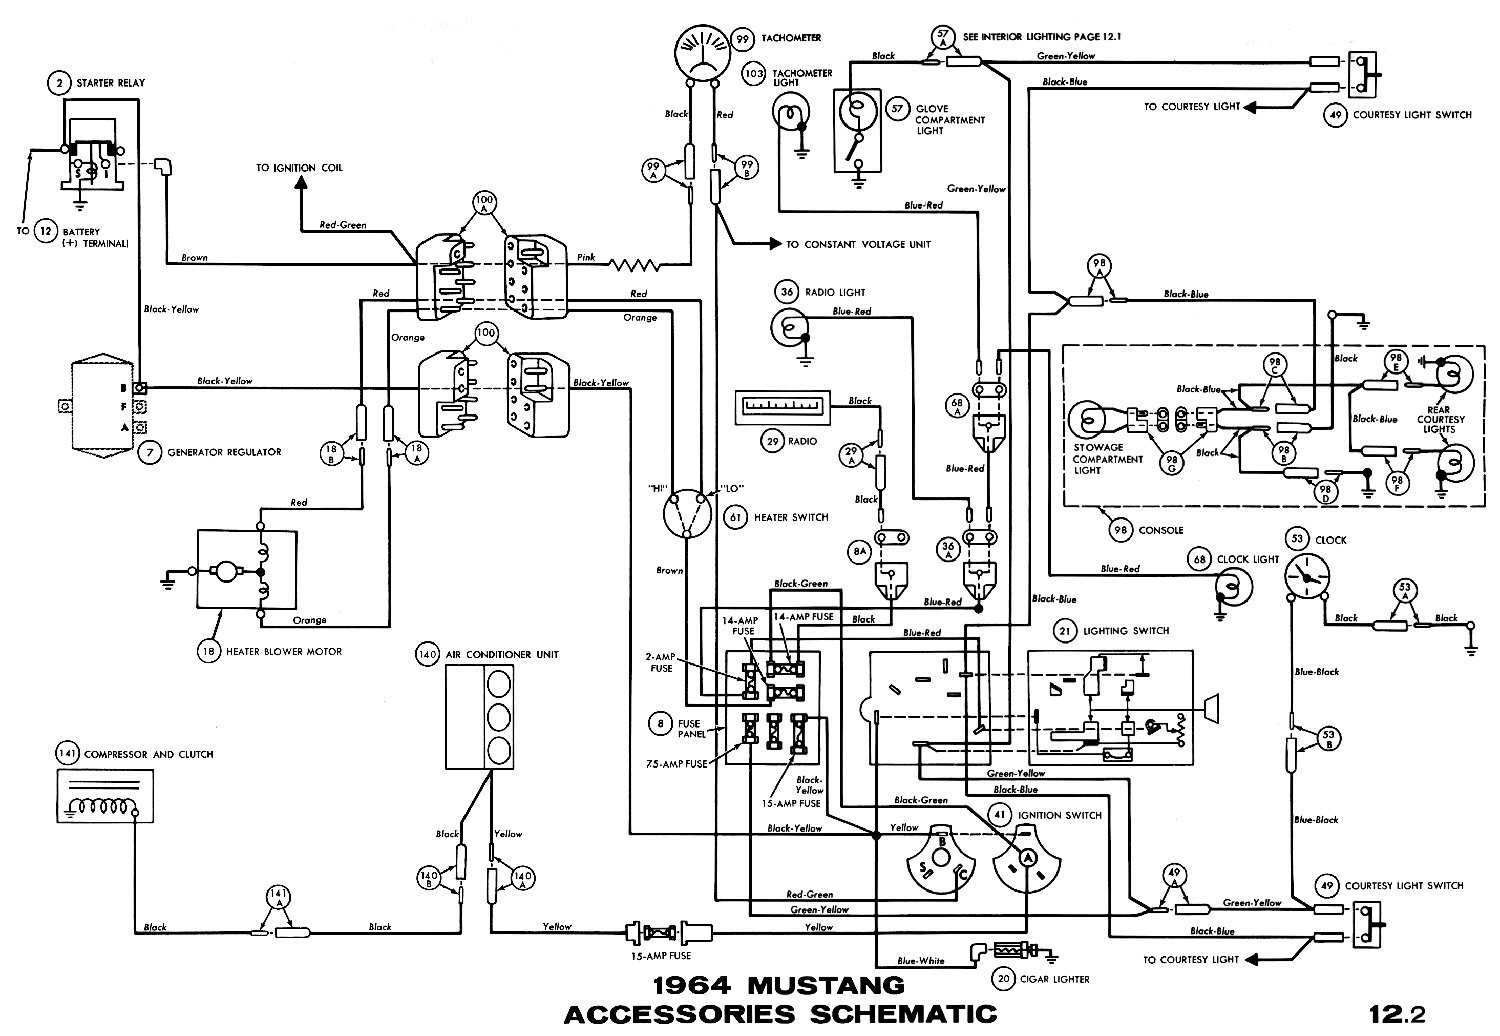 1965 mustang distributor wiring diagram wiring diagram fuse box u2022 rh friendsoffido co